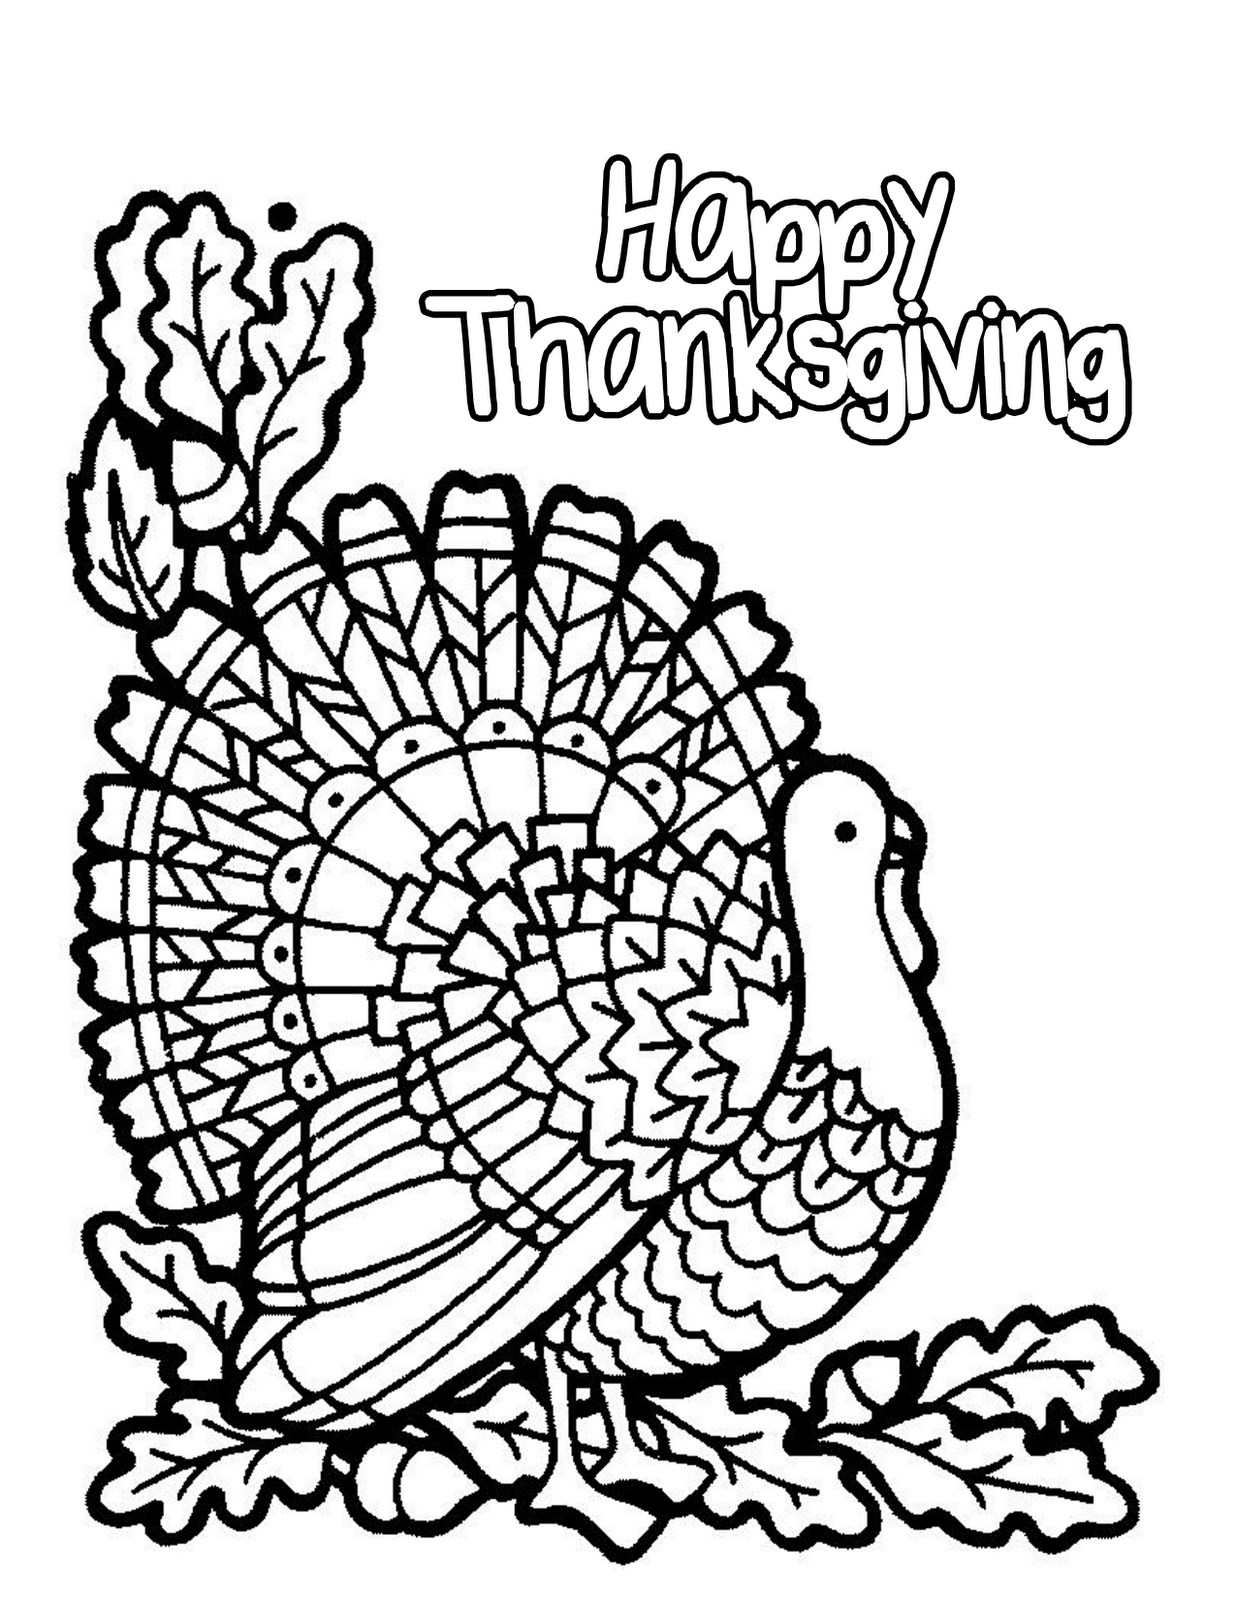 printable coloring pages thanksgiving free thanksgiving coloring book free printable for the kids free coloring printable pages thanksgiving